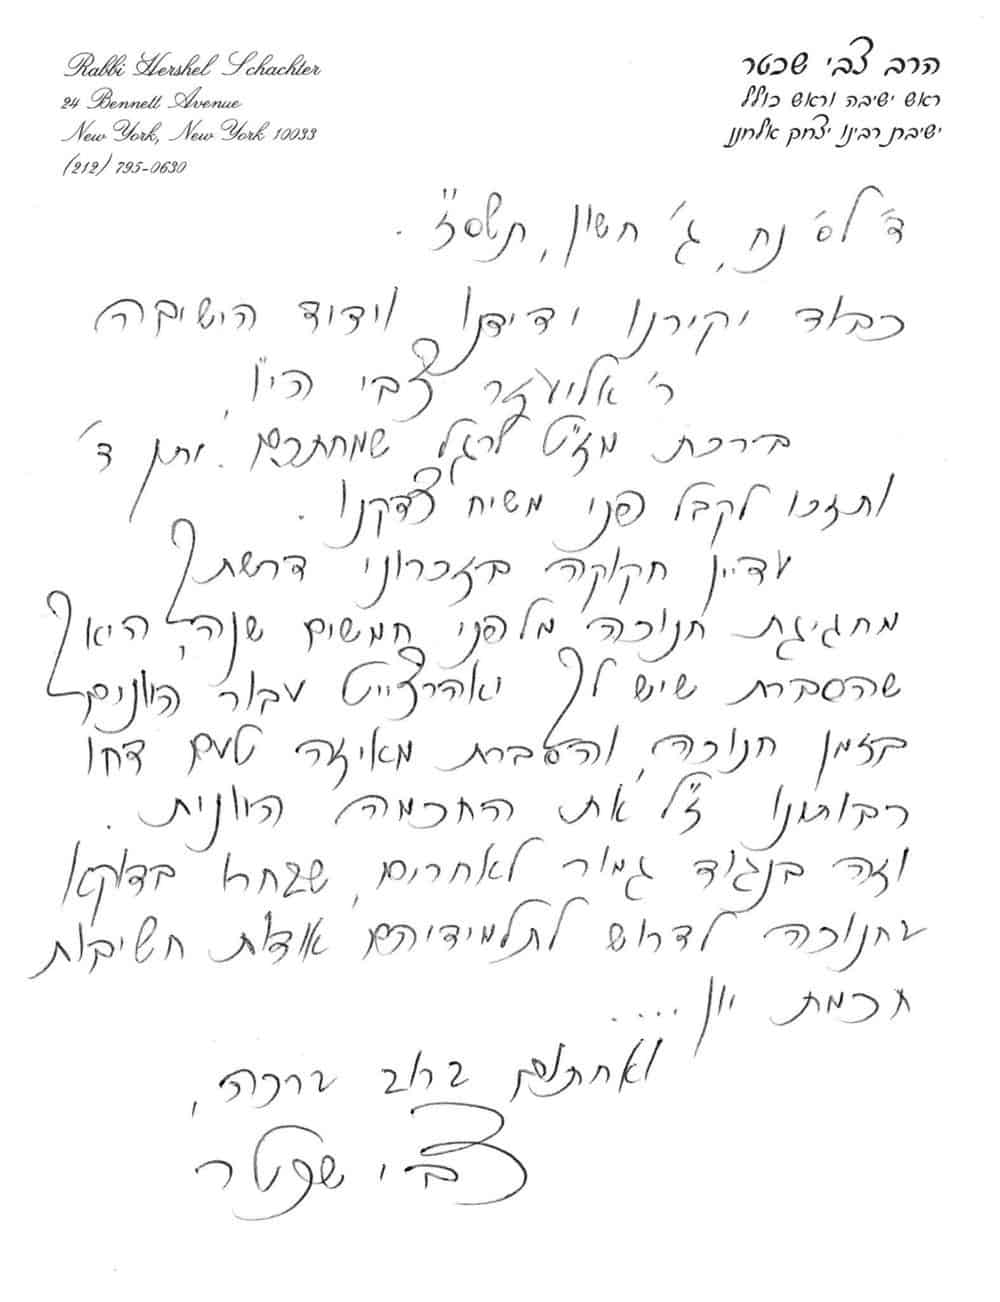 Letter from Rabbi Hershel Schachter in